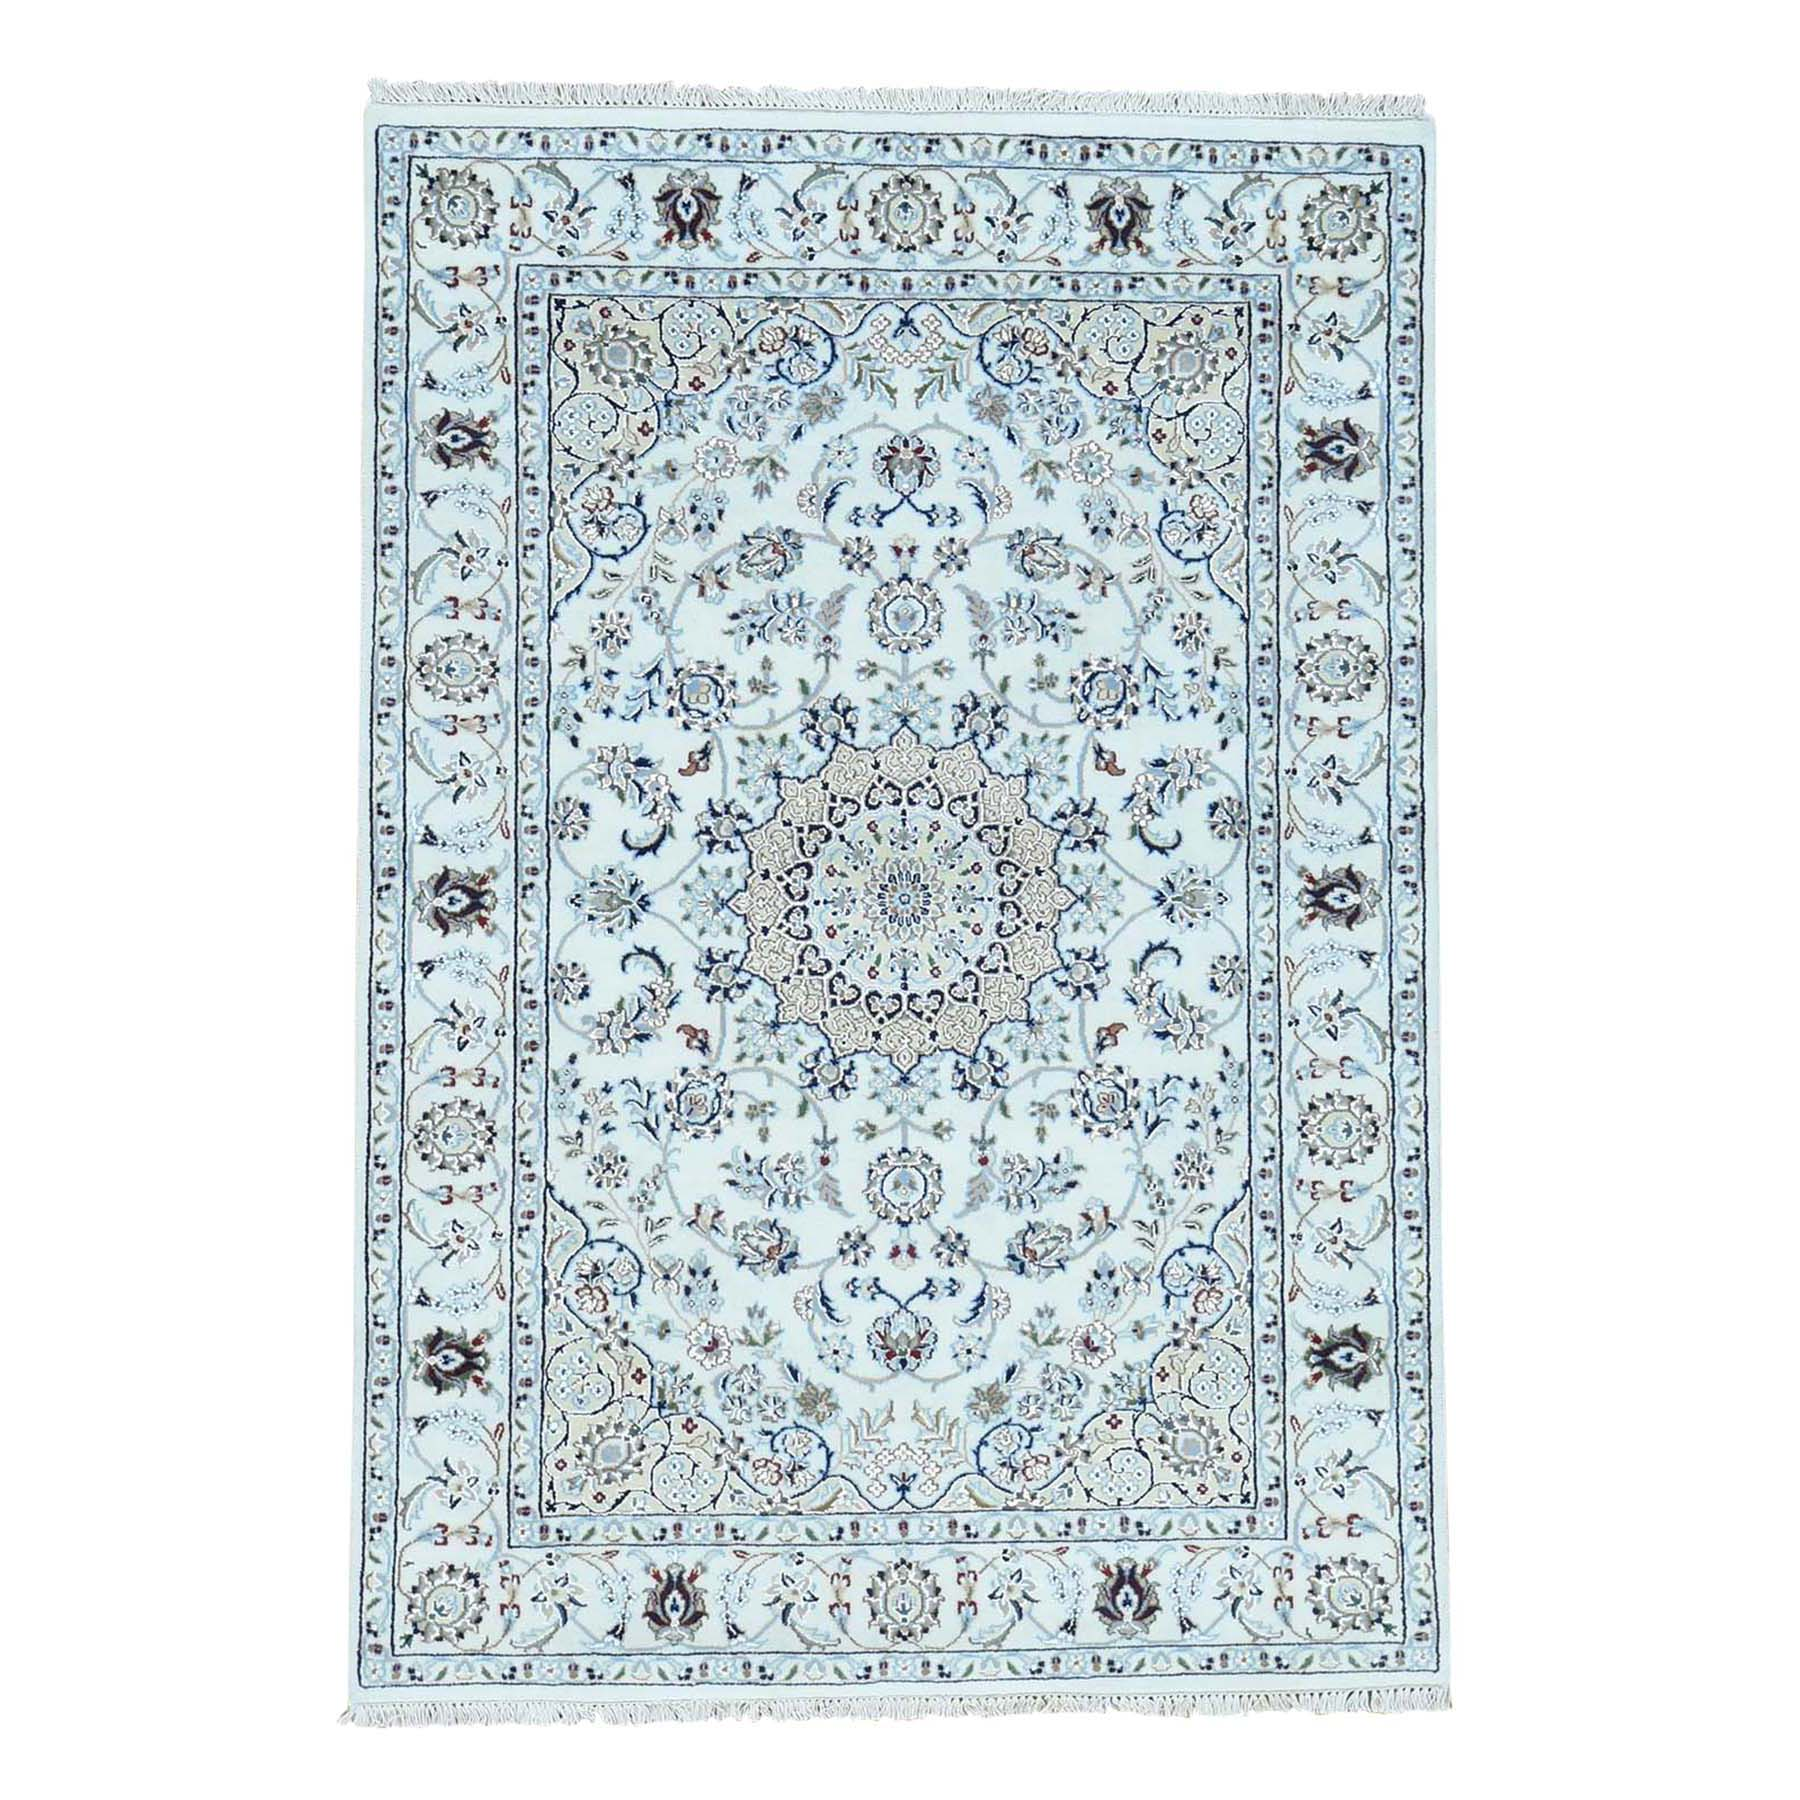 Pirniakan Collection Hand Knotted Ivory Rug No: 0186544